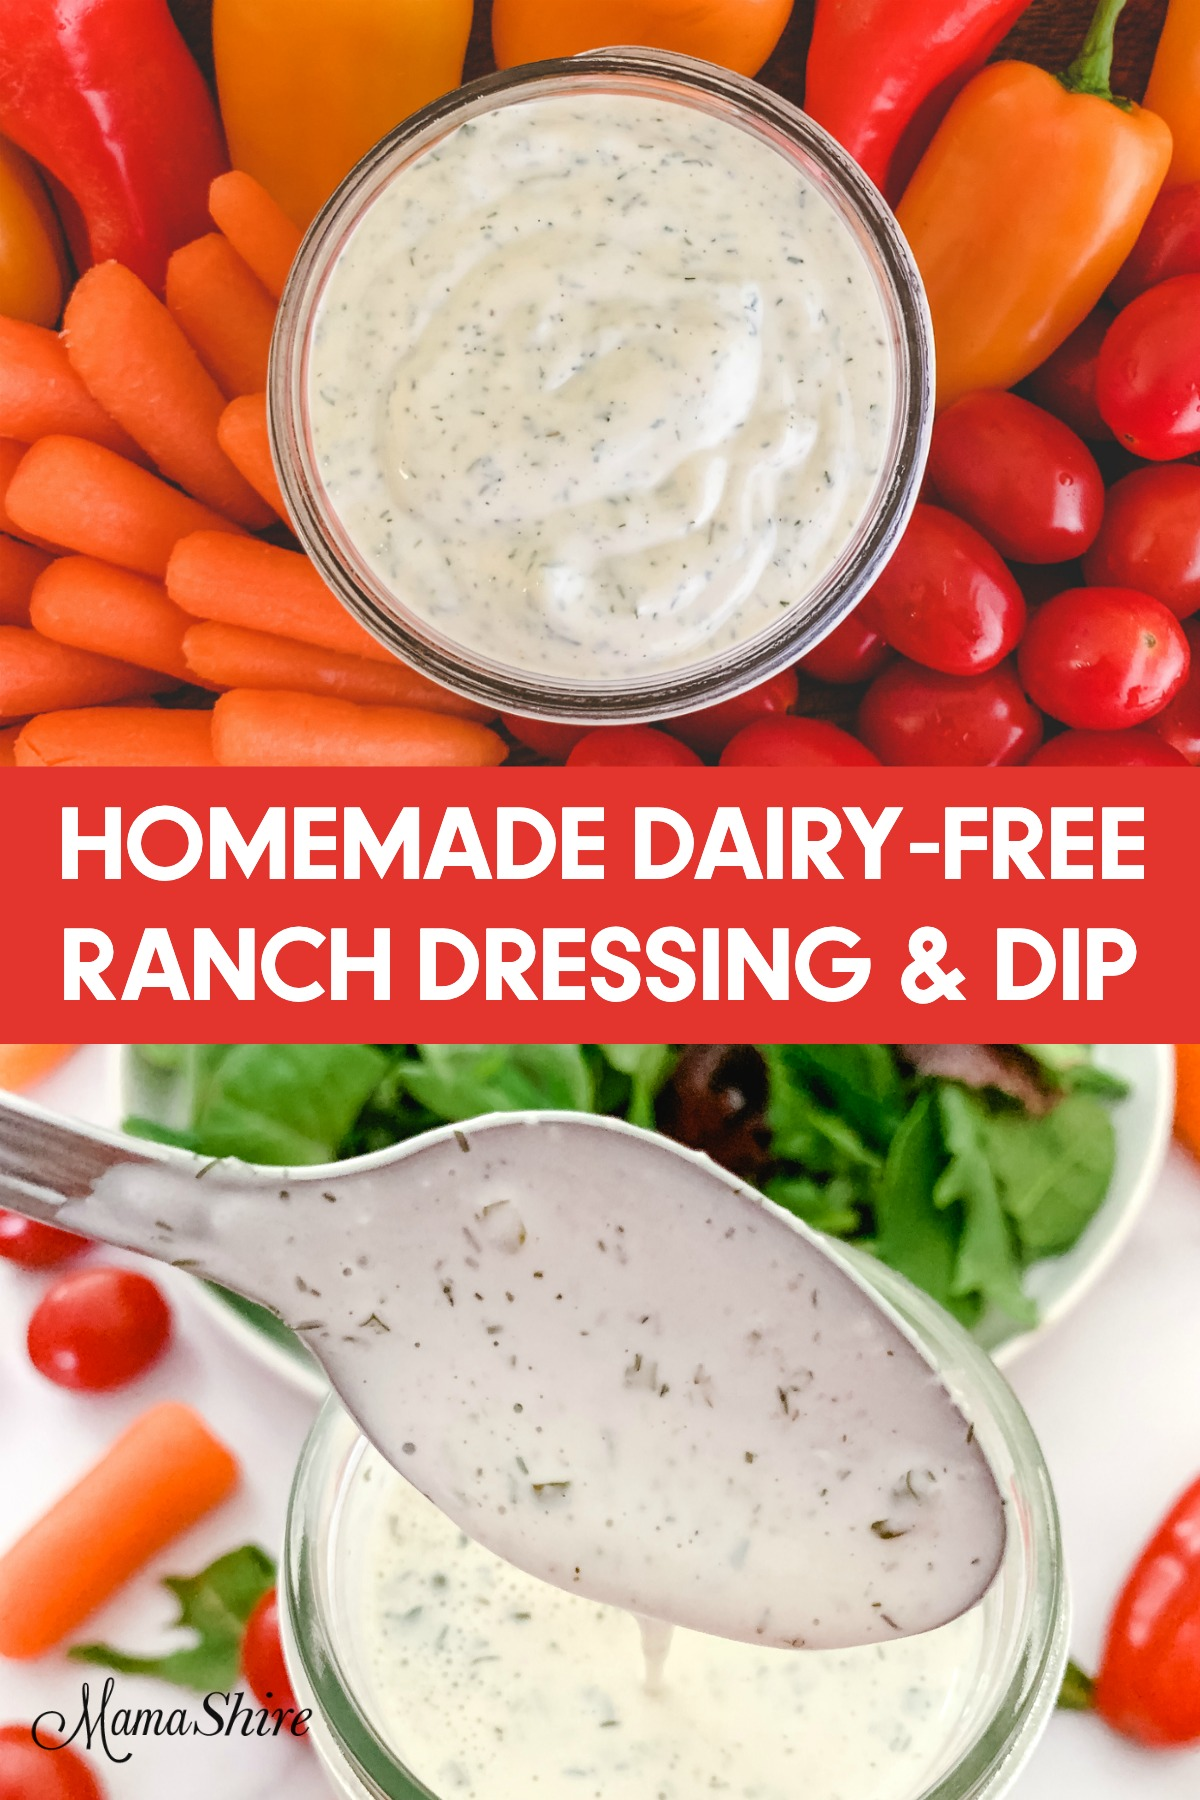 Dairy-free ranch dressing and dip with carrots, tomatoes, peppers, and salads.